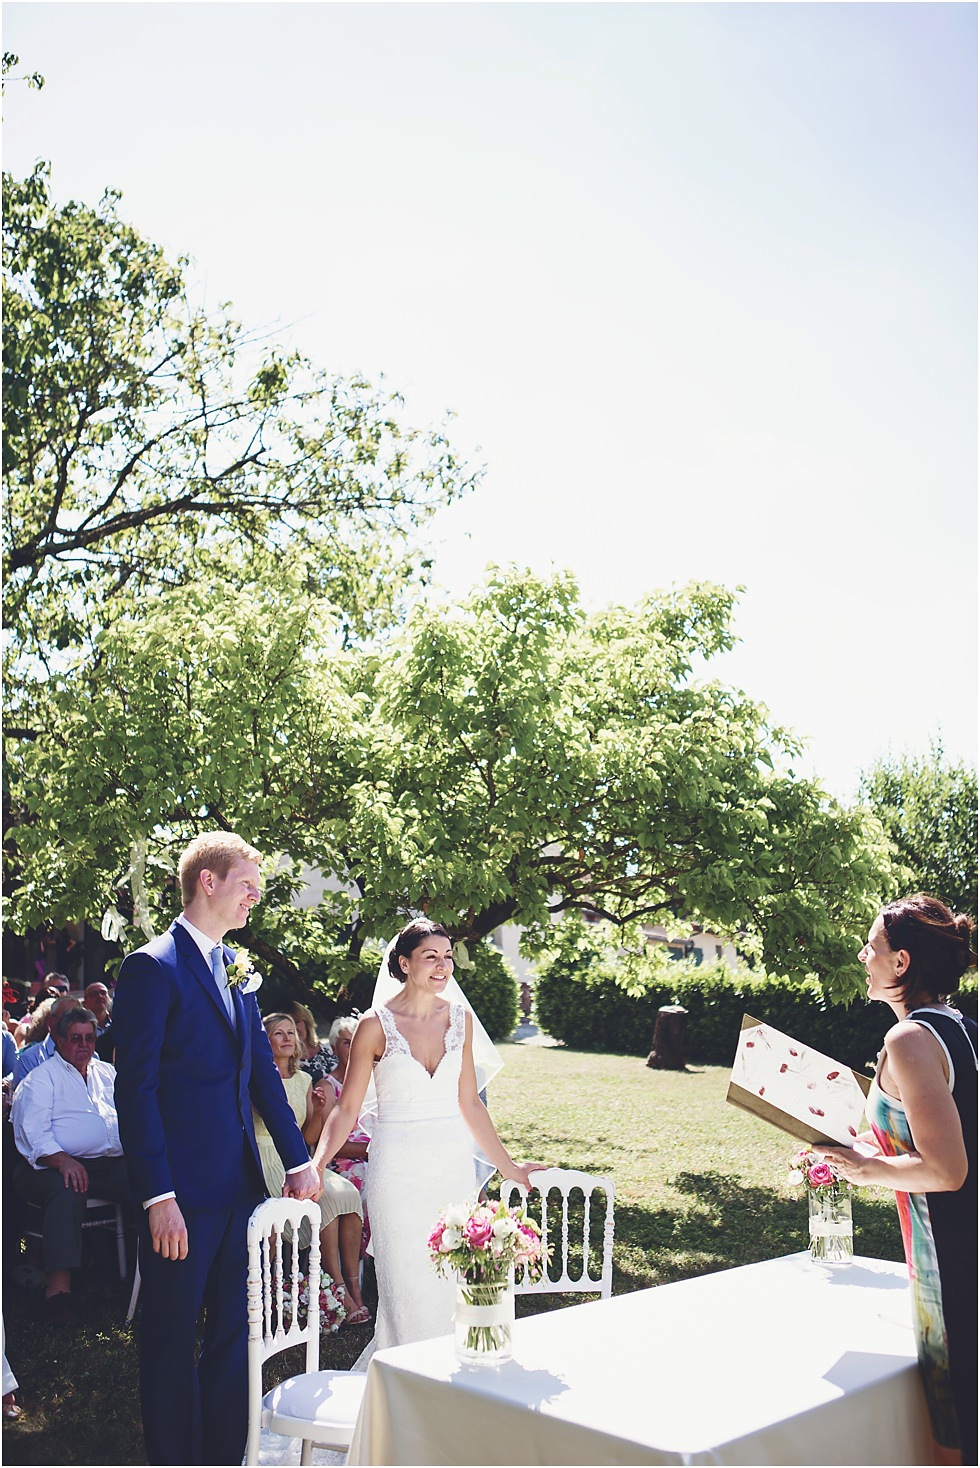 Cristina Rossi Photography Destination Wedding Italy_1261